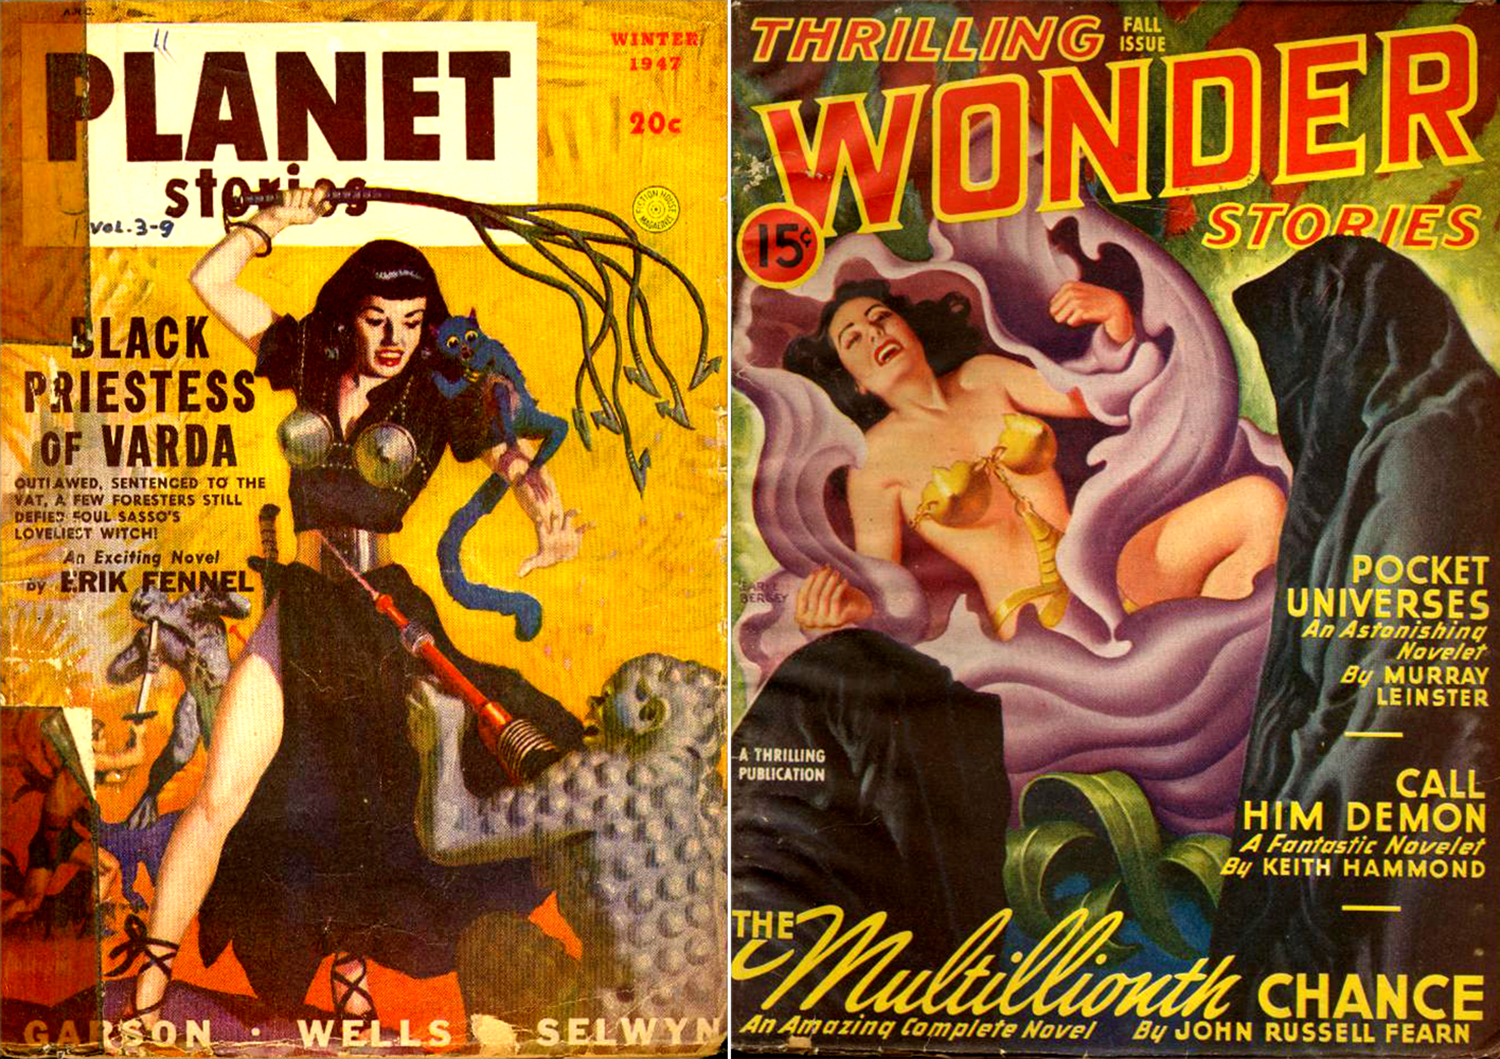 PLANET STORIES-WINT 1947